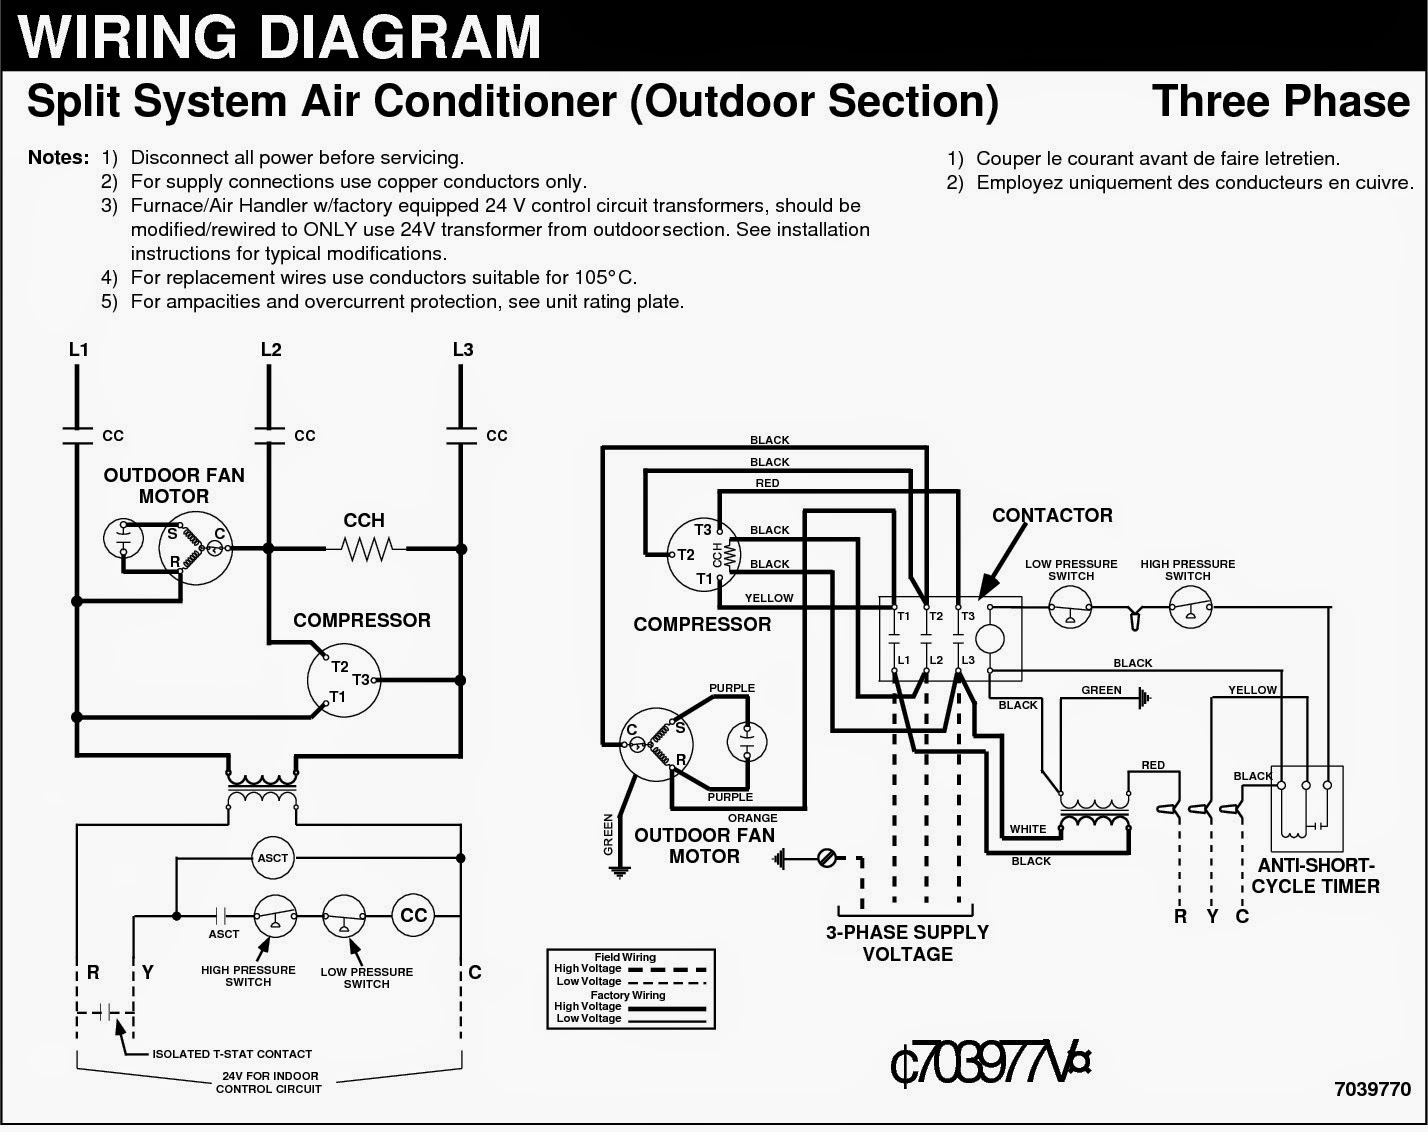 3+phase electrical wiring diagrams for air conditioning systems part two air conditioner wiring diagram picture at soozxer.org